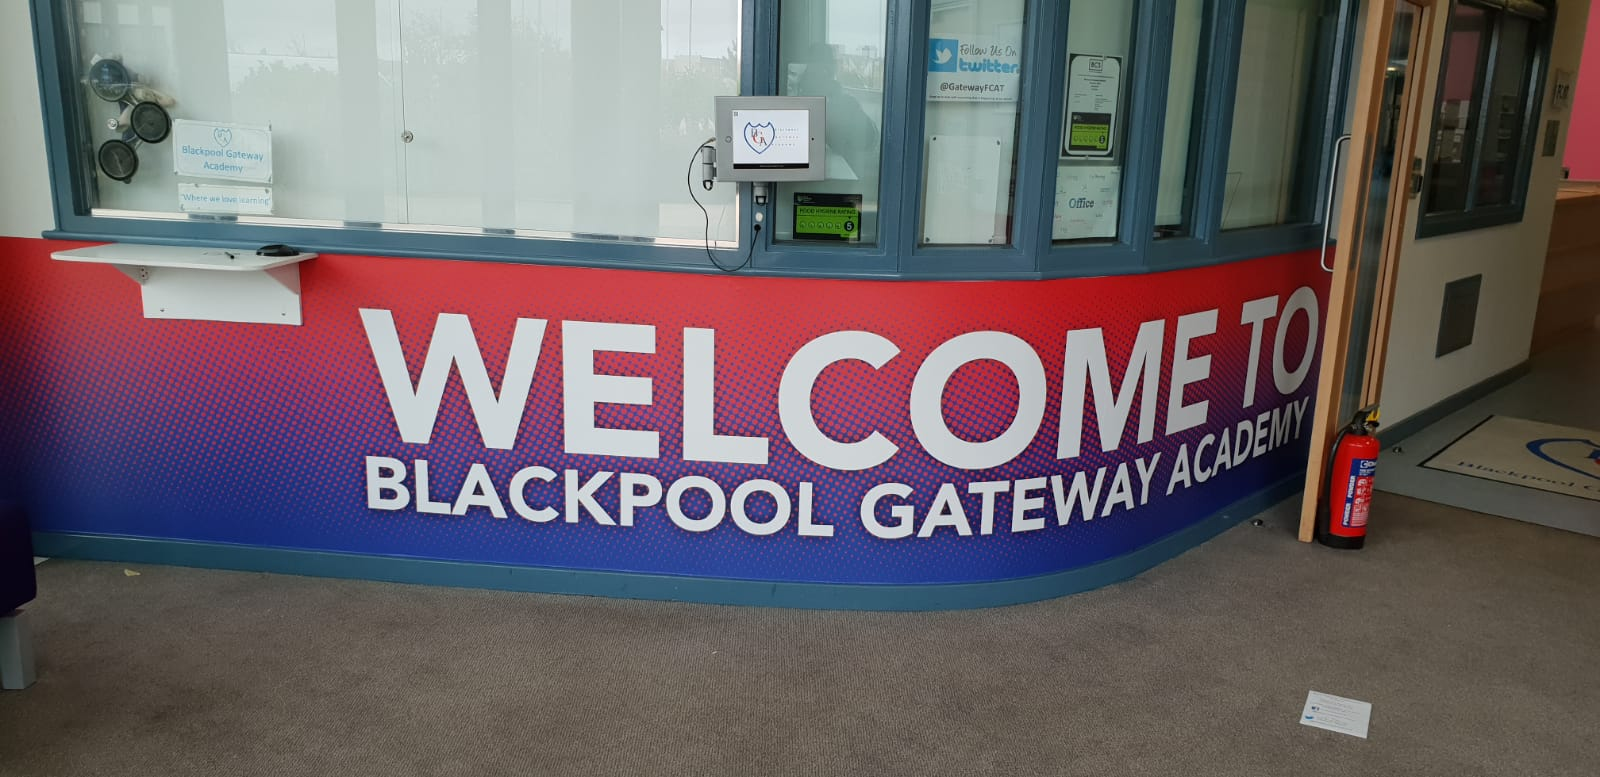 Welcome Blackpool Gateway Academy Wallcoverings Wall Graphics